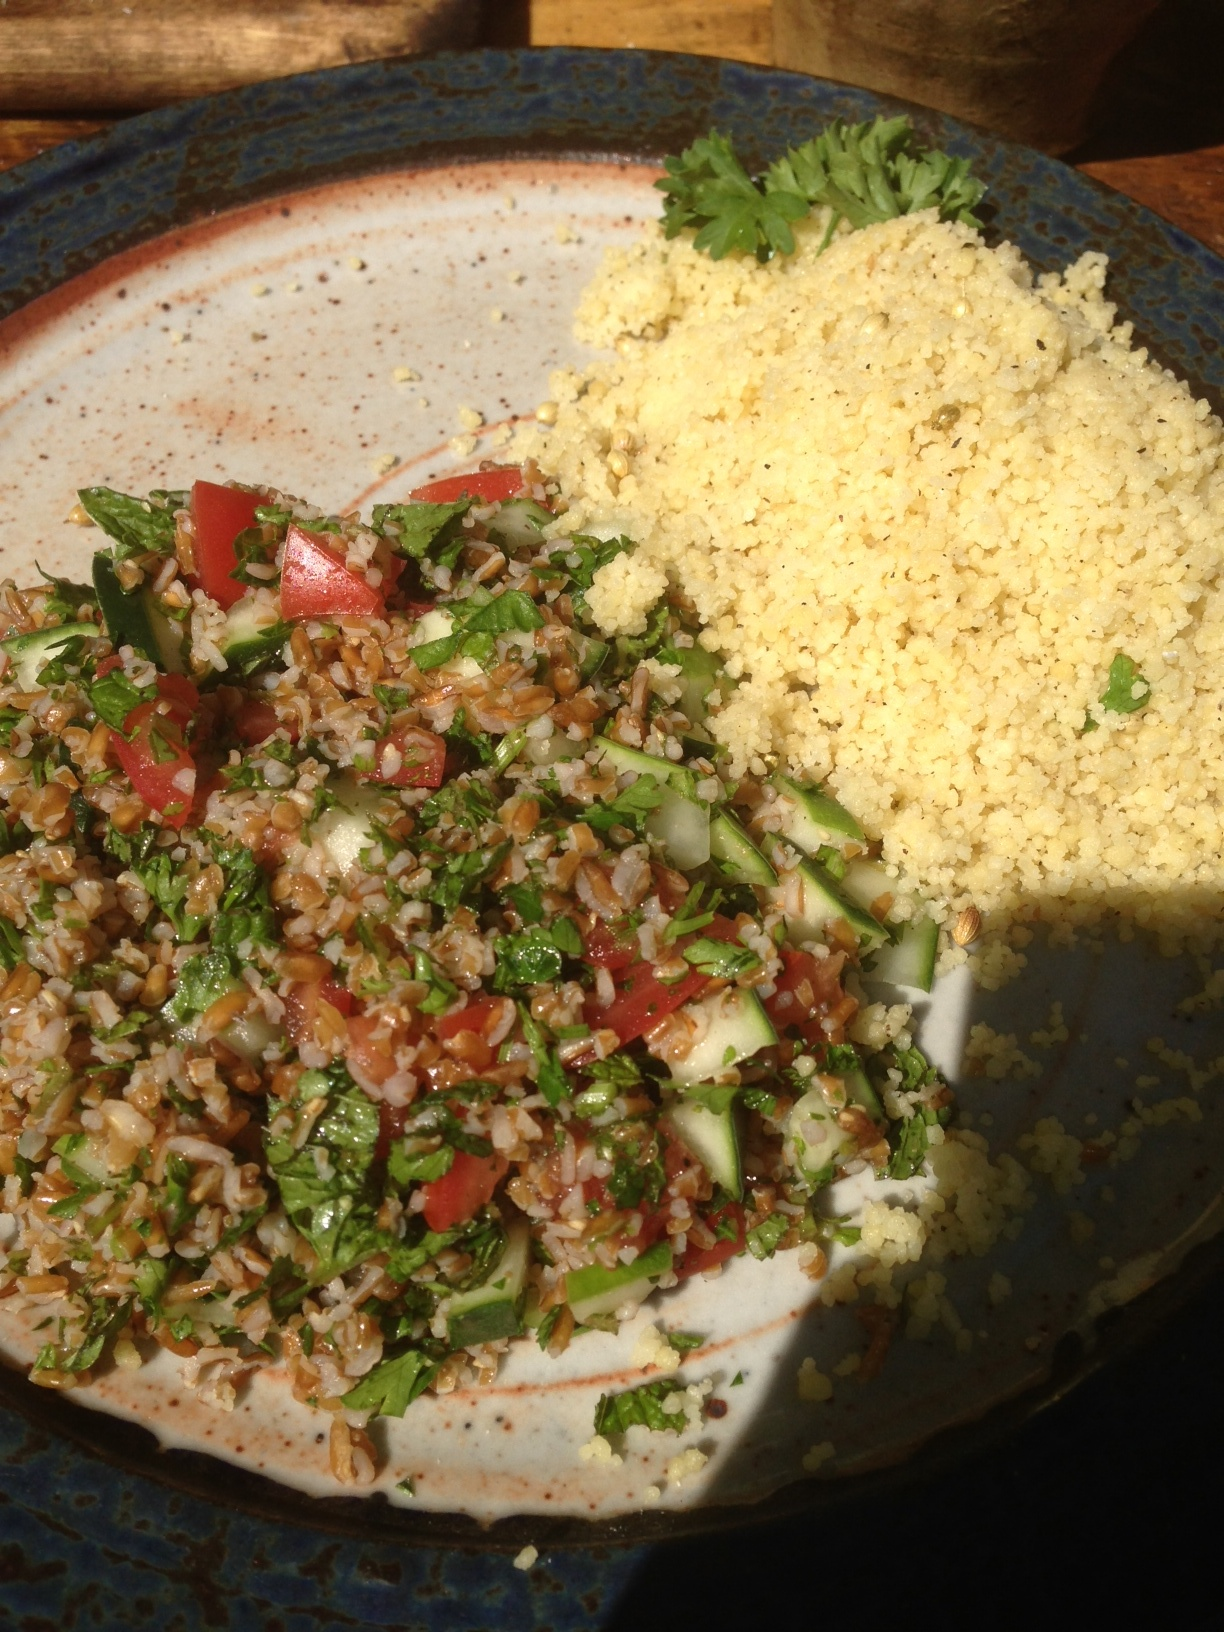 Tabouli and Couscous